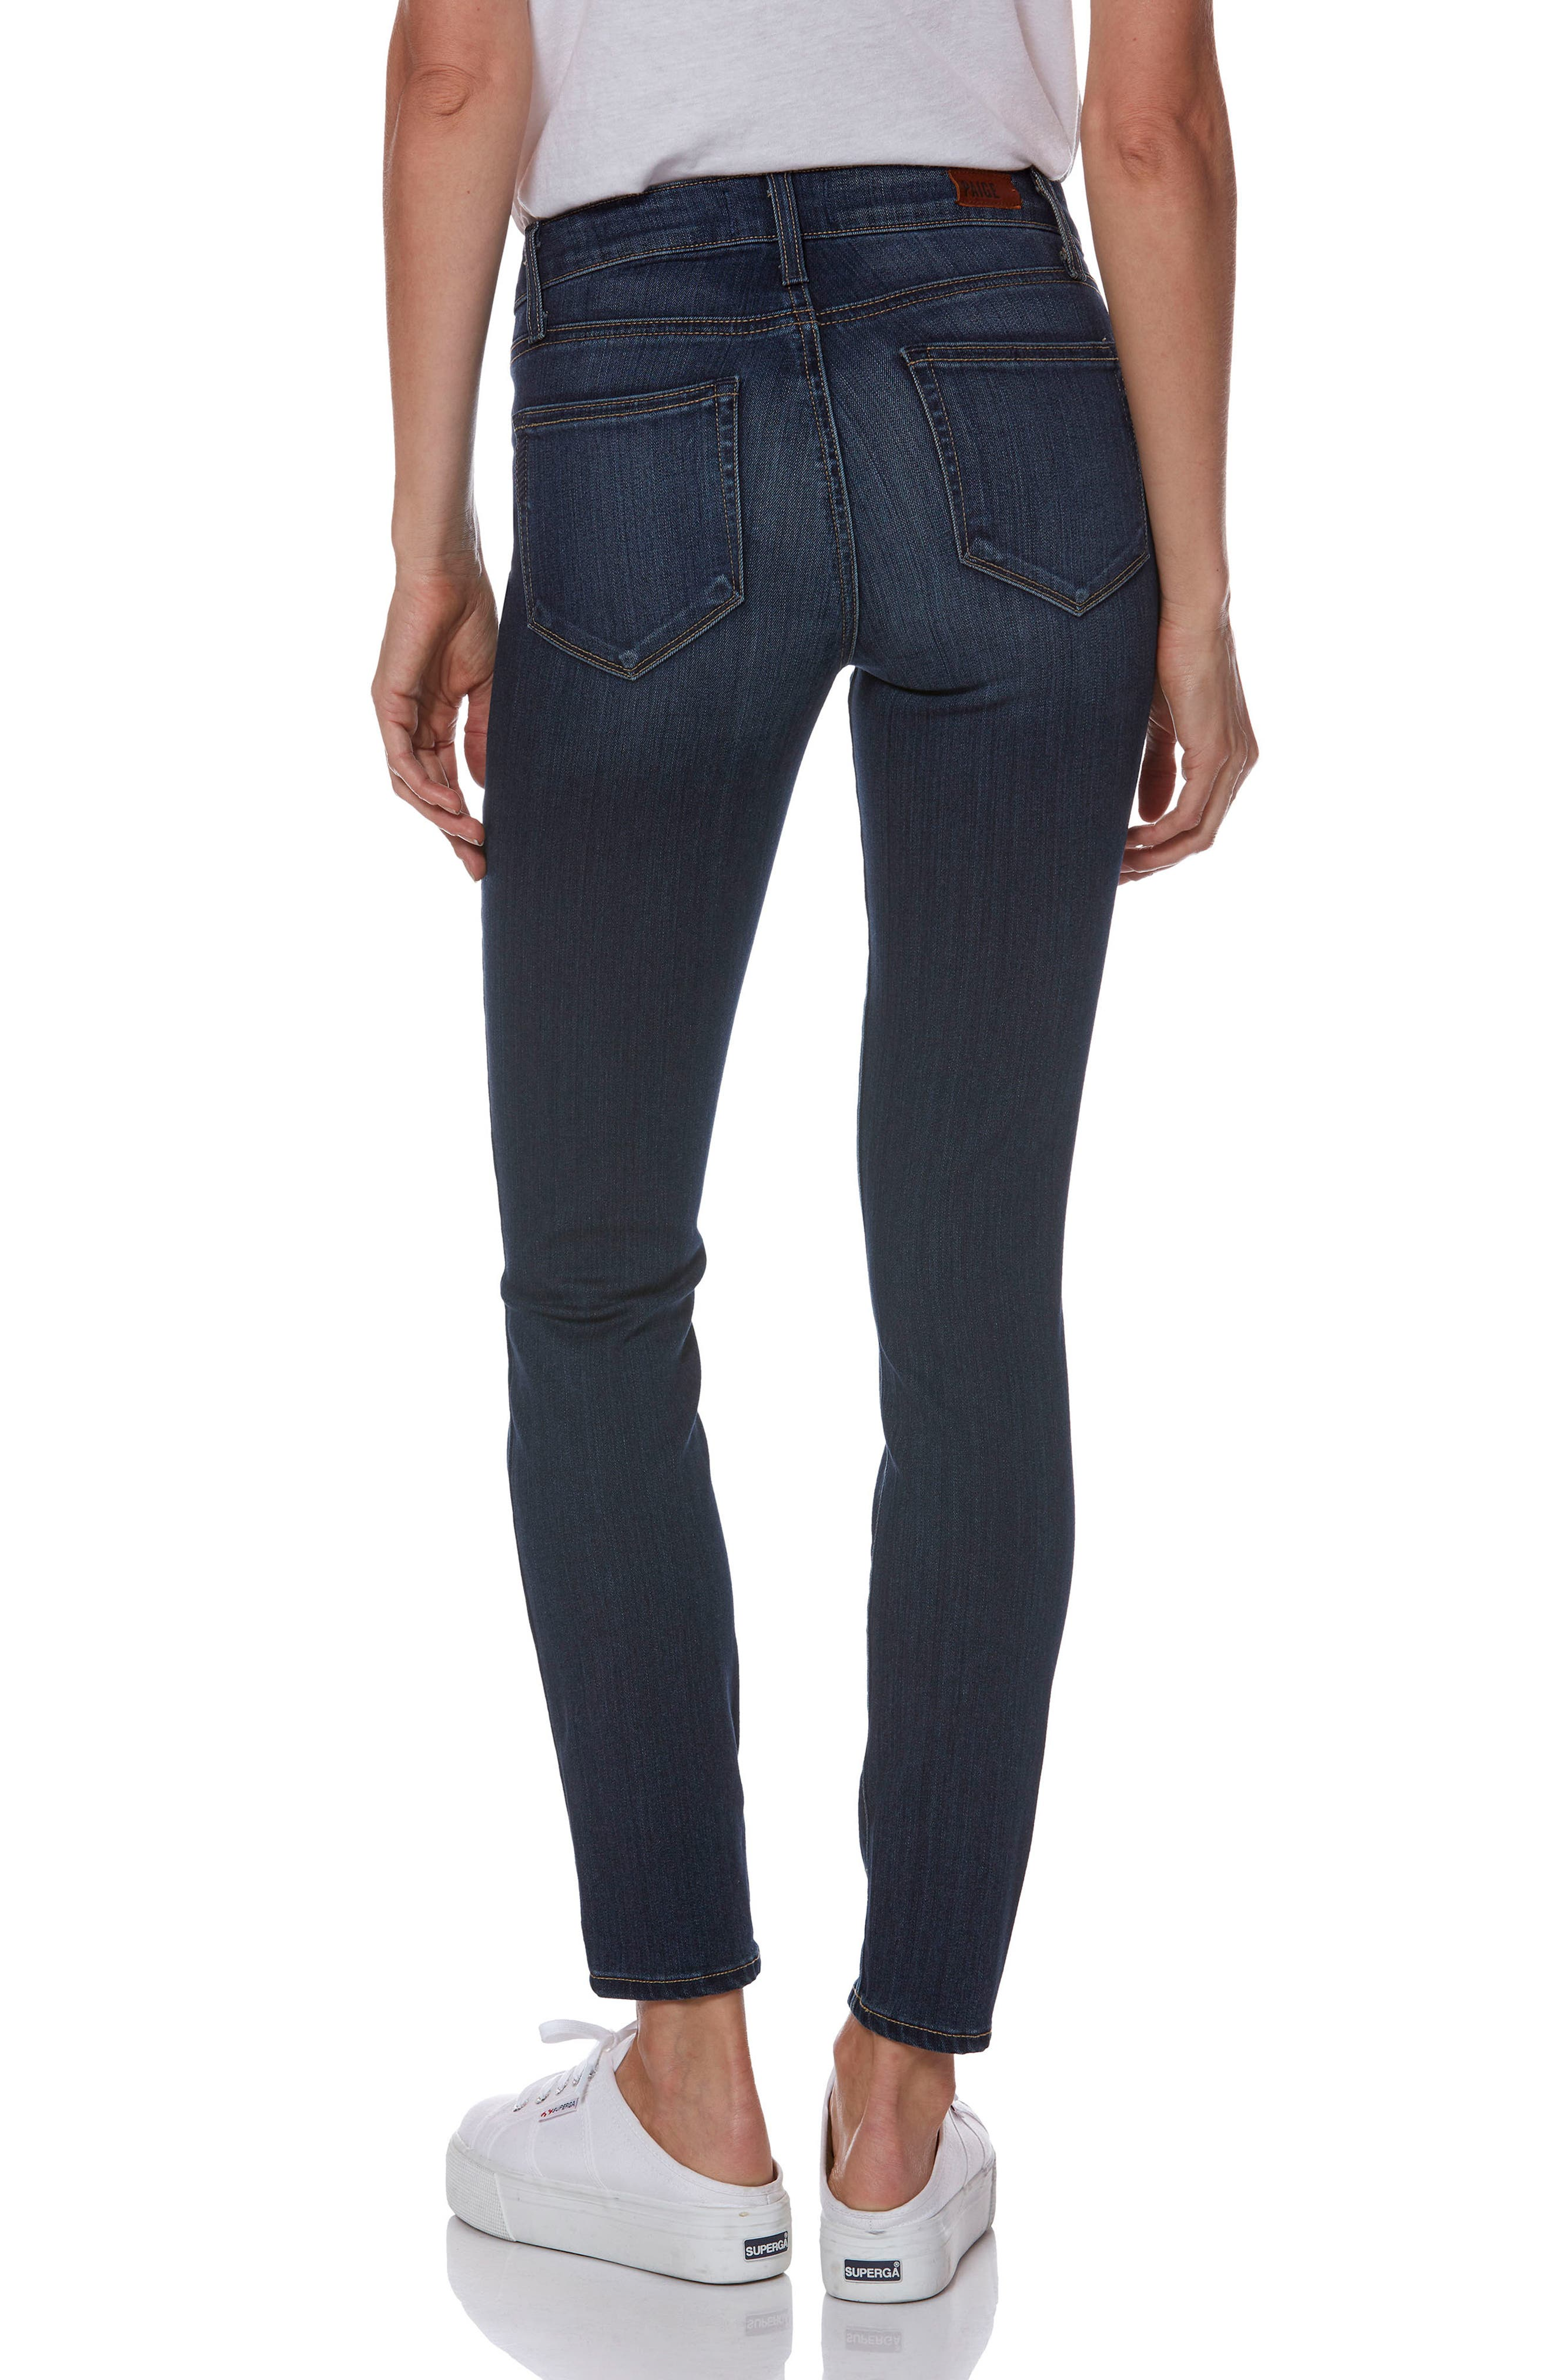 Transcend - Verdugo Ankle Skinny Jeans,                             Alternate thumbnail 2, color,                             NOTTINGHAM